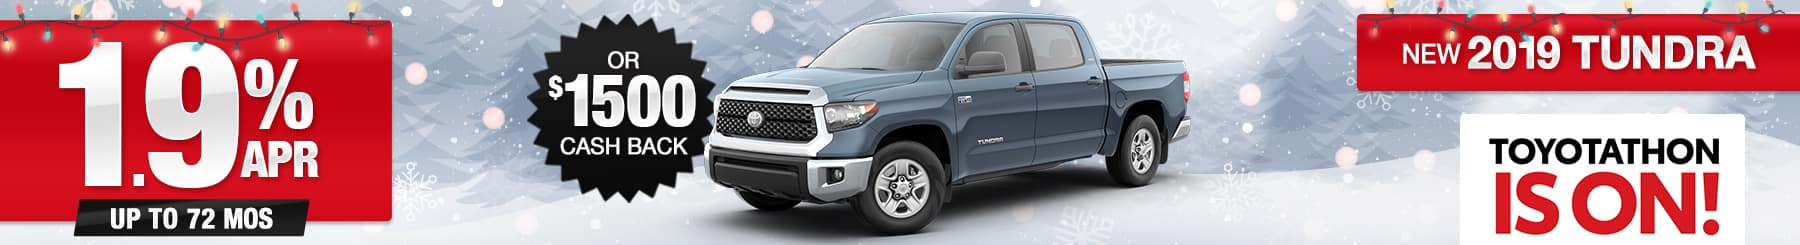 New 2019 Tundra Finance or Cash Back Special